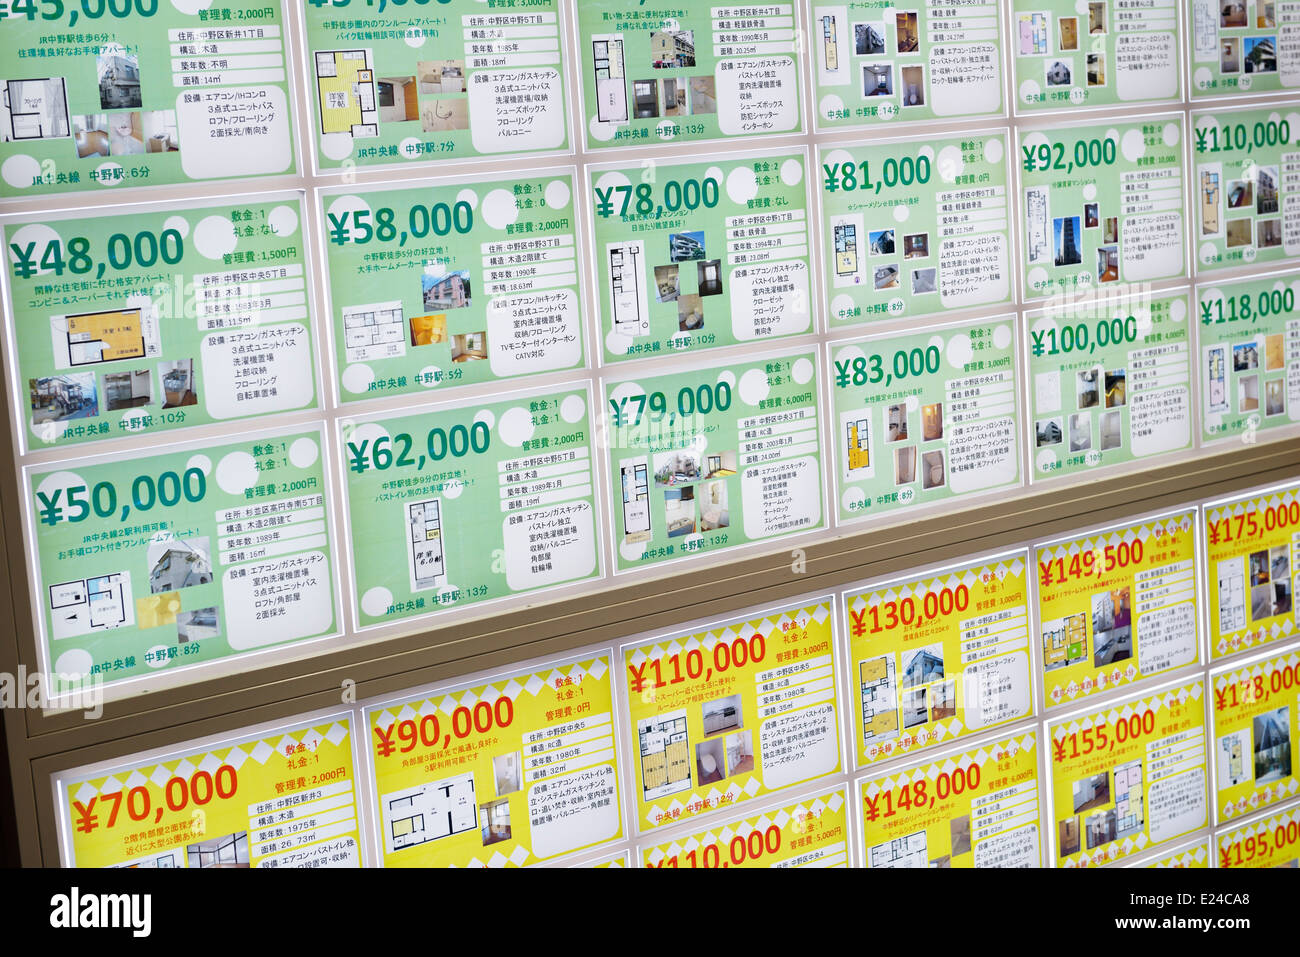 Tokyo Real Estate Property Listings With Prices Japan Stock Photo Alamy